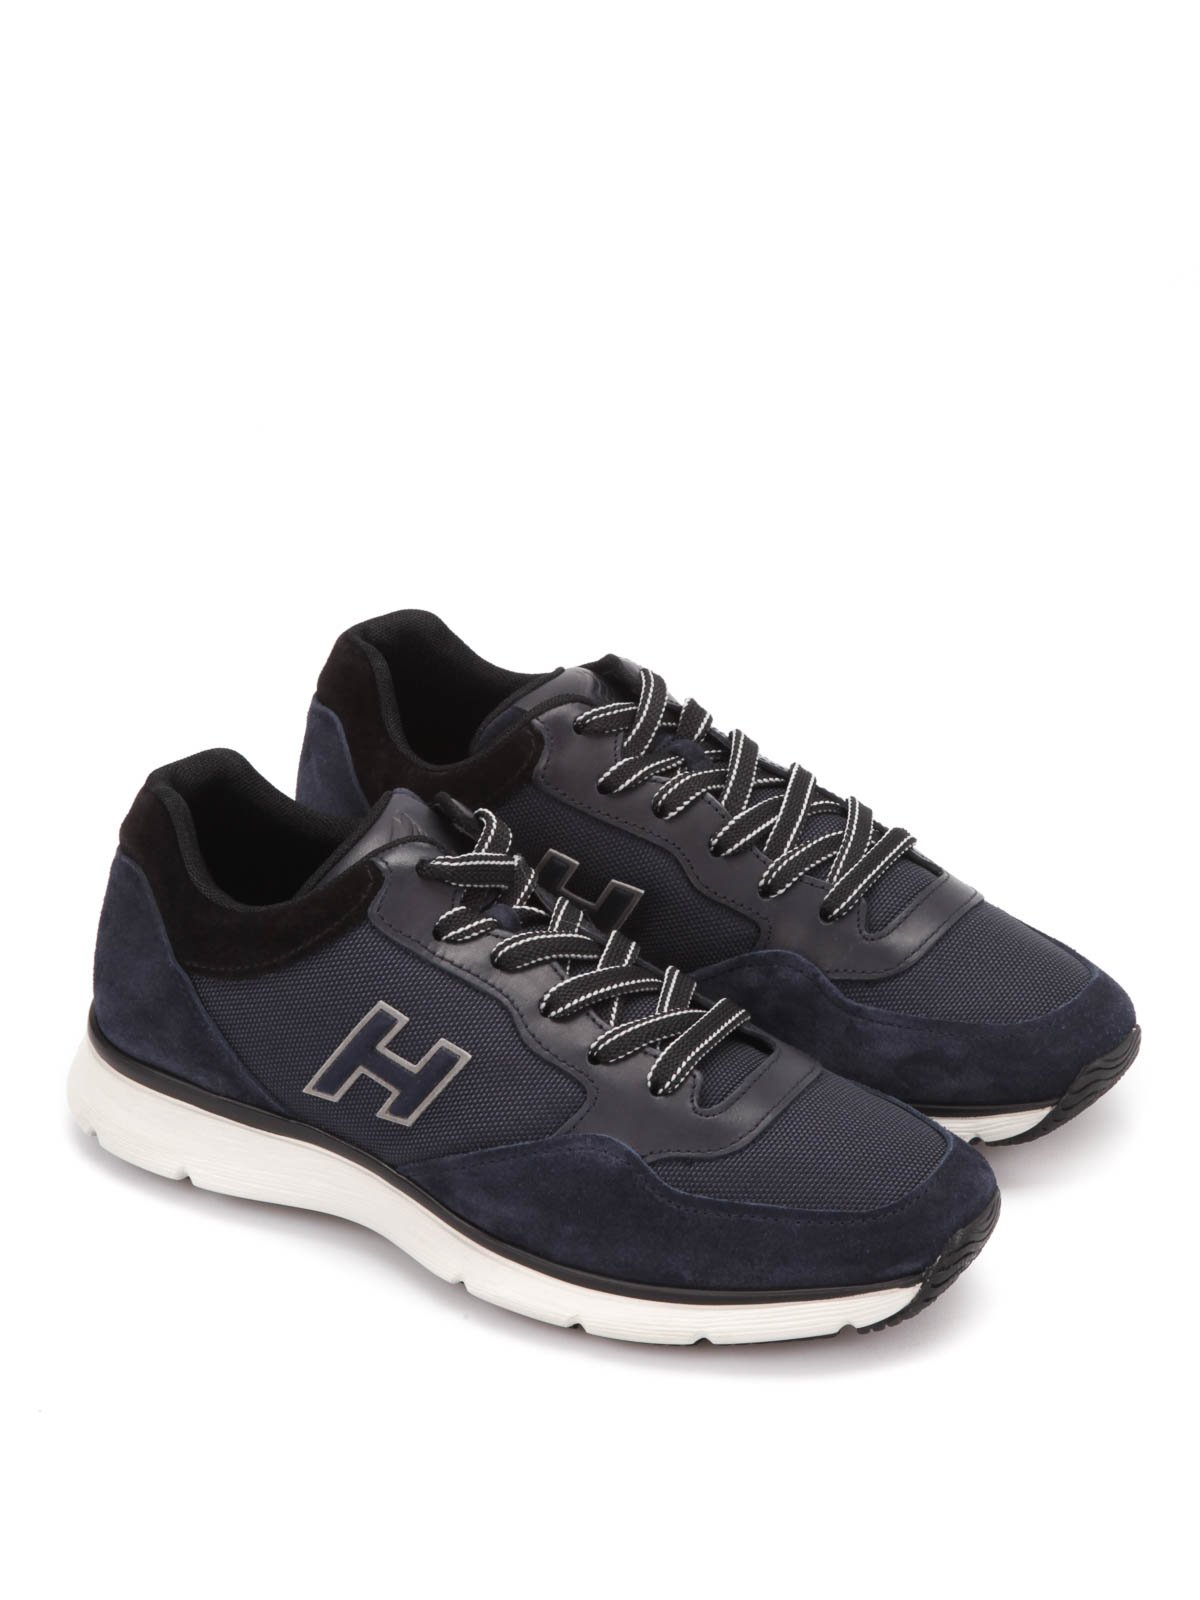 Hogan Shop Online Sneakers Traditional 2015 Hogan Sneakers Ikrix Shop